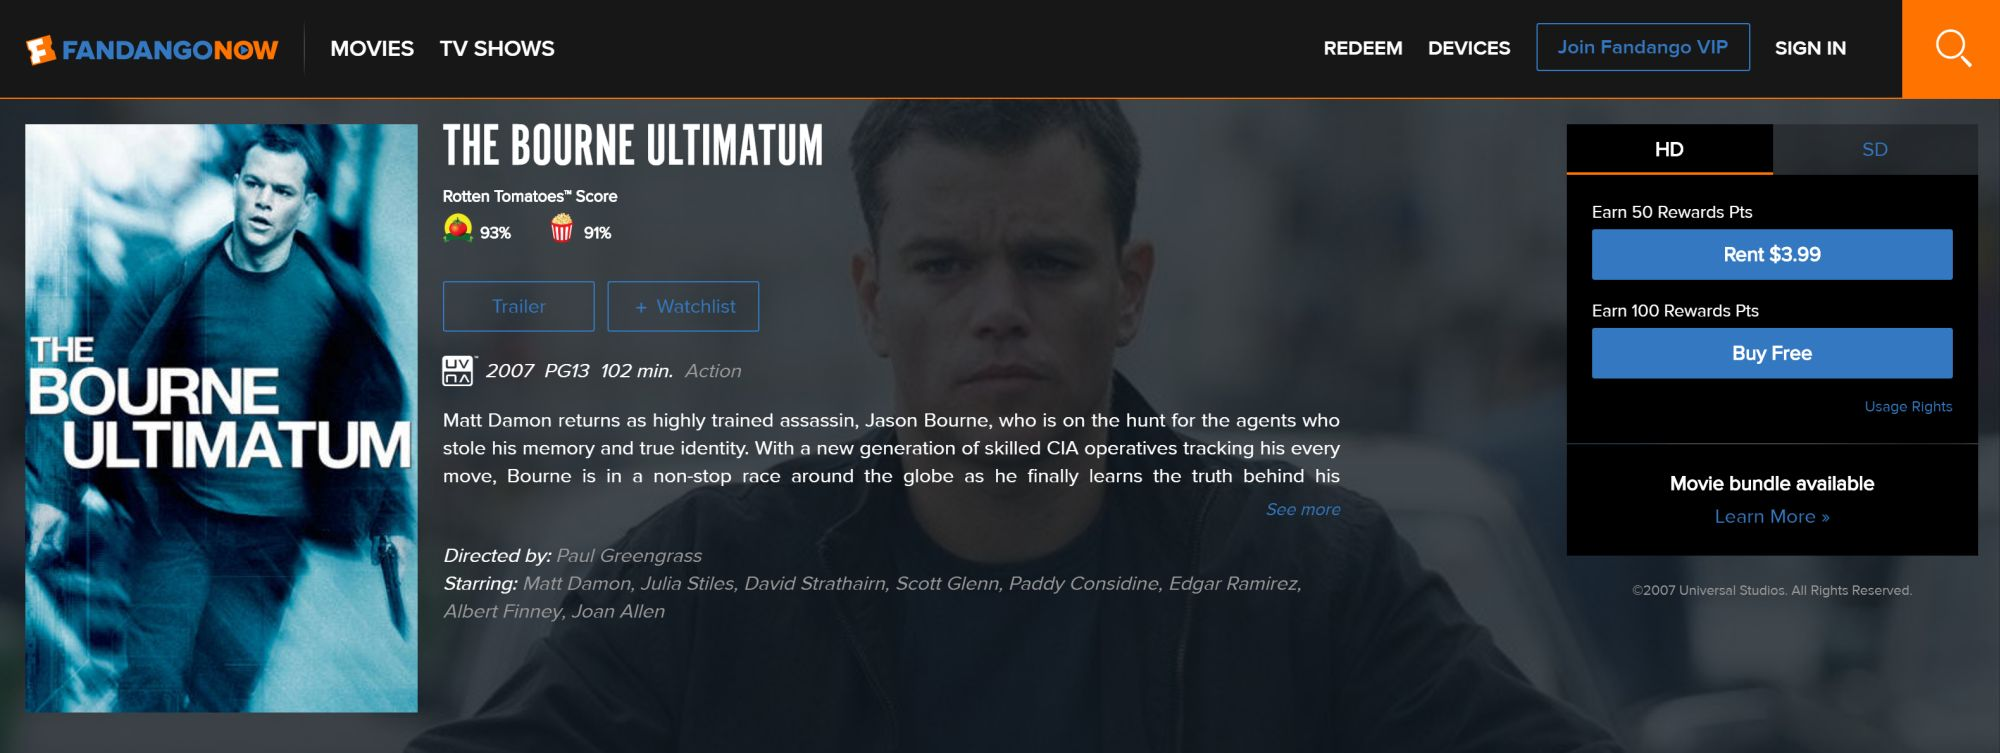 Hot Deal: Get the Bourne Ultimatum for Free